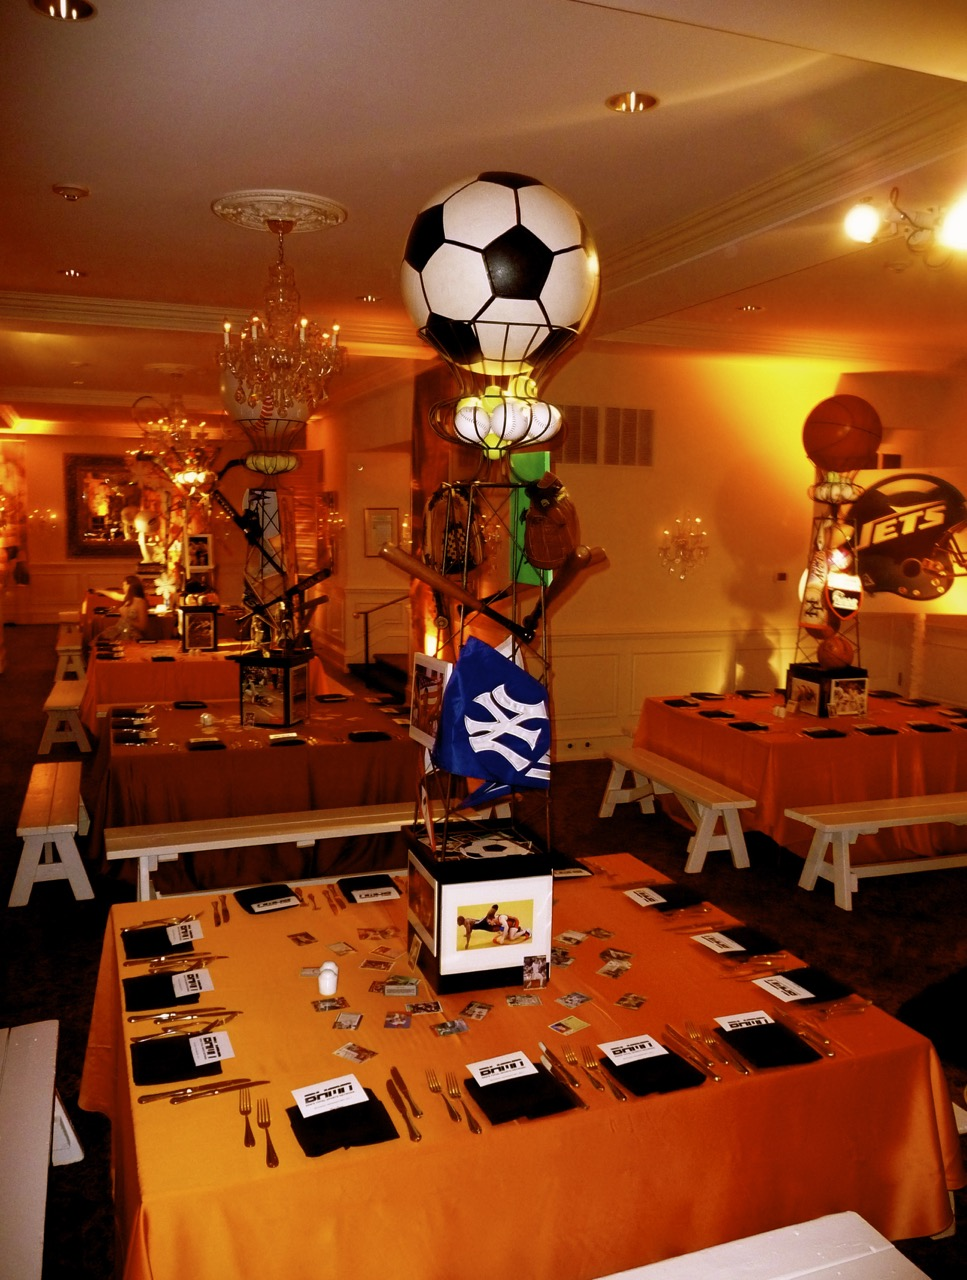 Sports+Theme+Centerpieces+Decor+and+Lighting+by+Eggsotic+Events+NJ+Event+Design+and+Decor+Rental++-+4.jpg